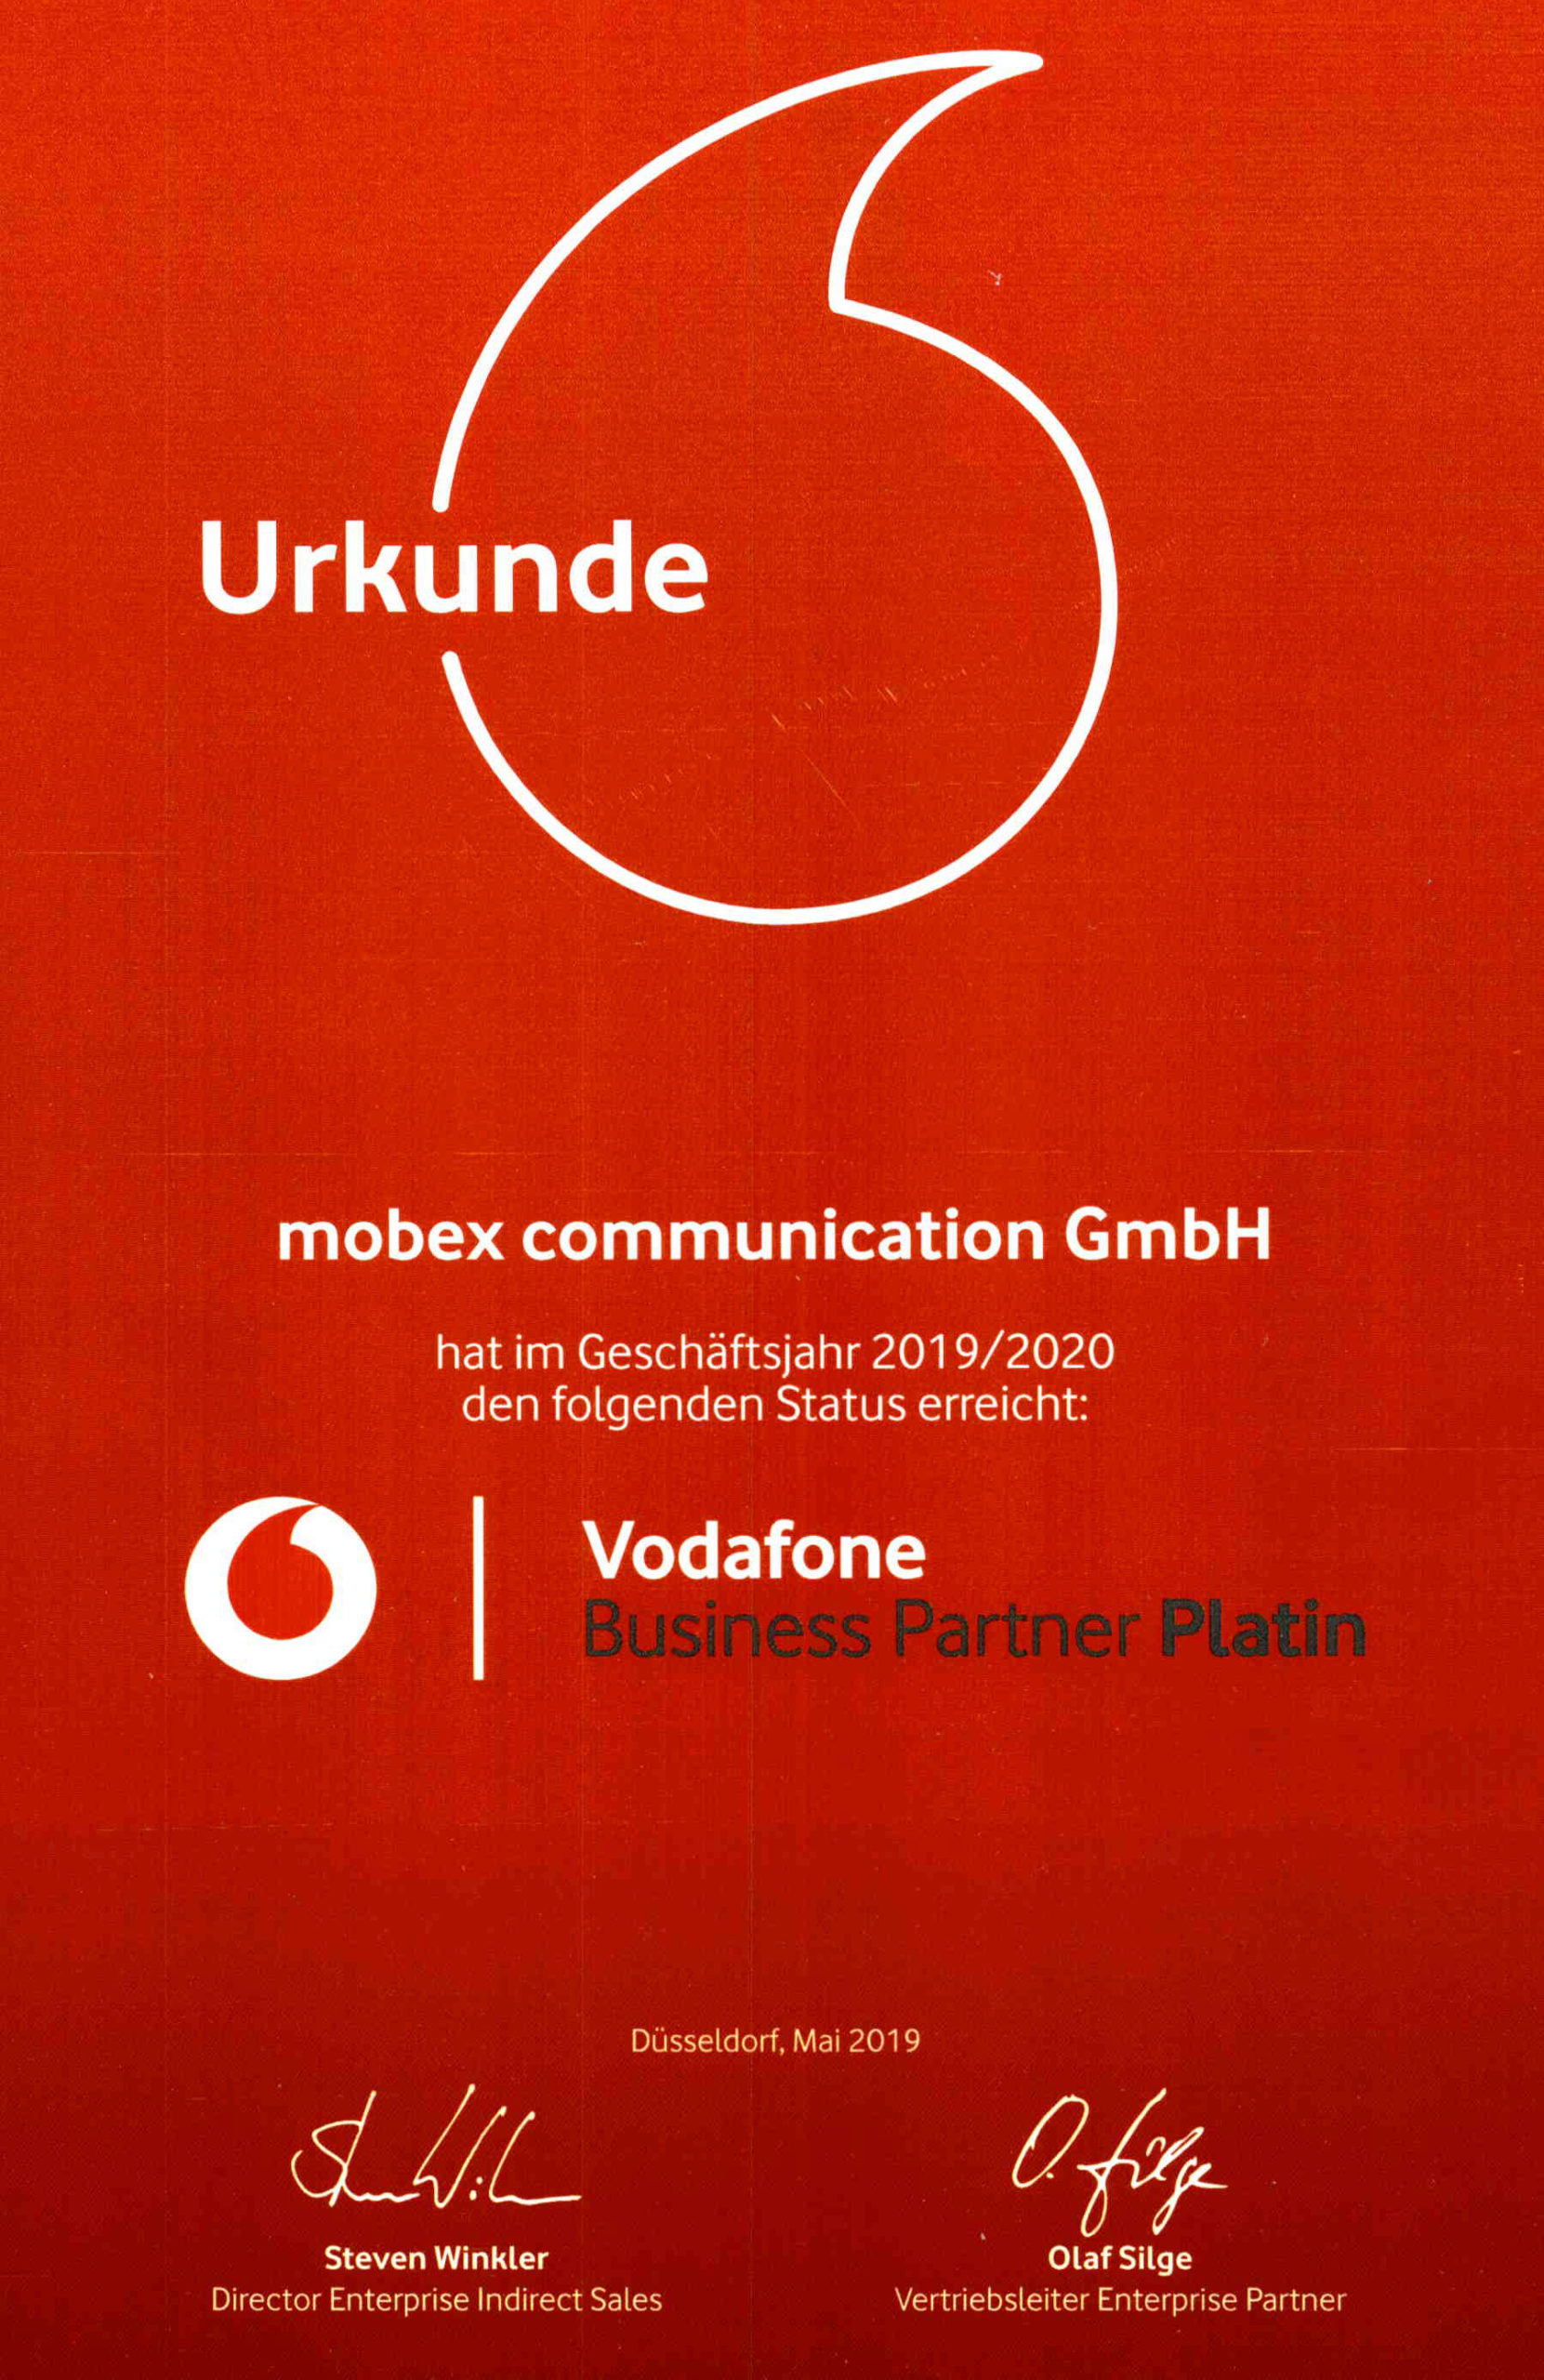 vodafone Business Partner Platin